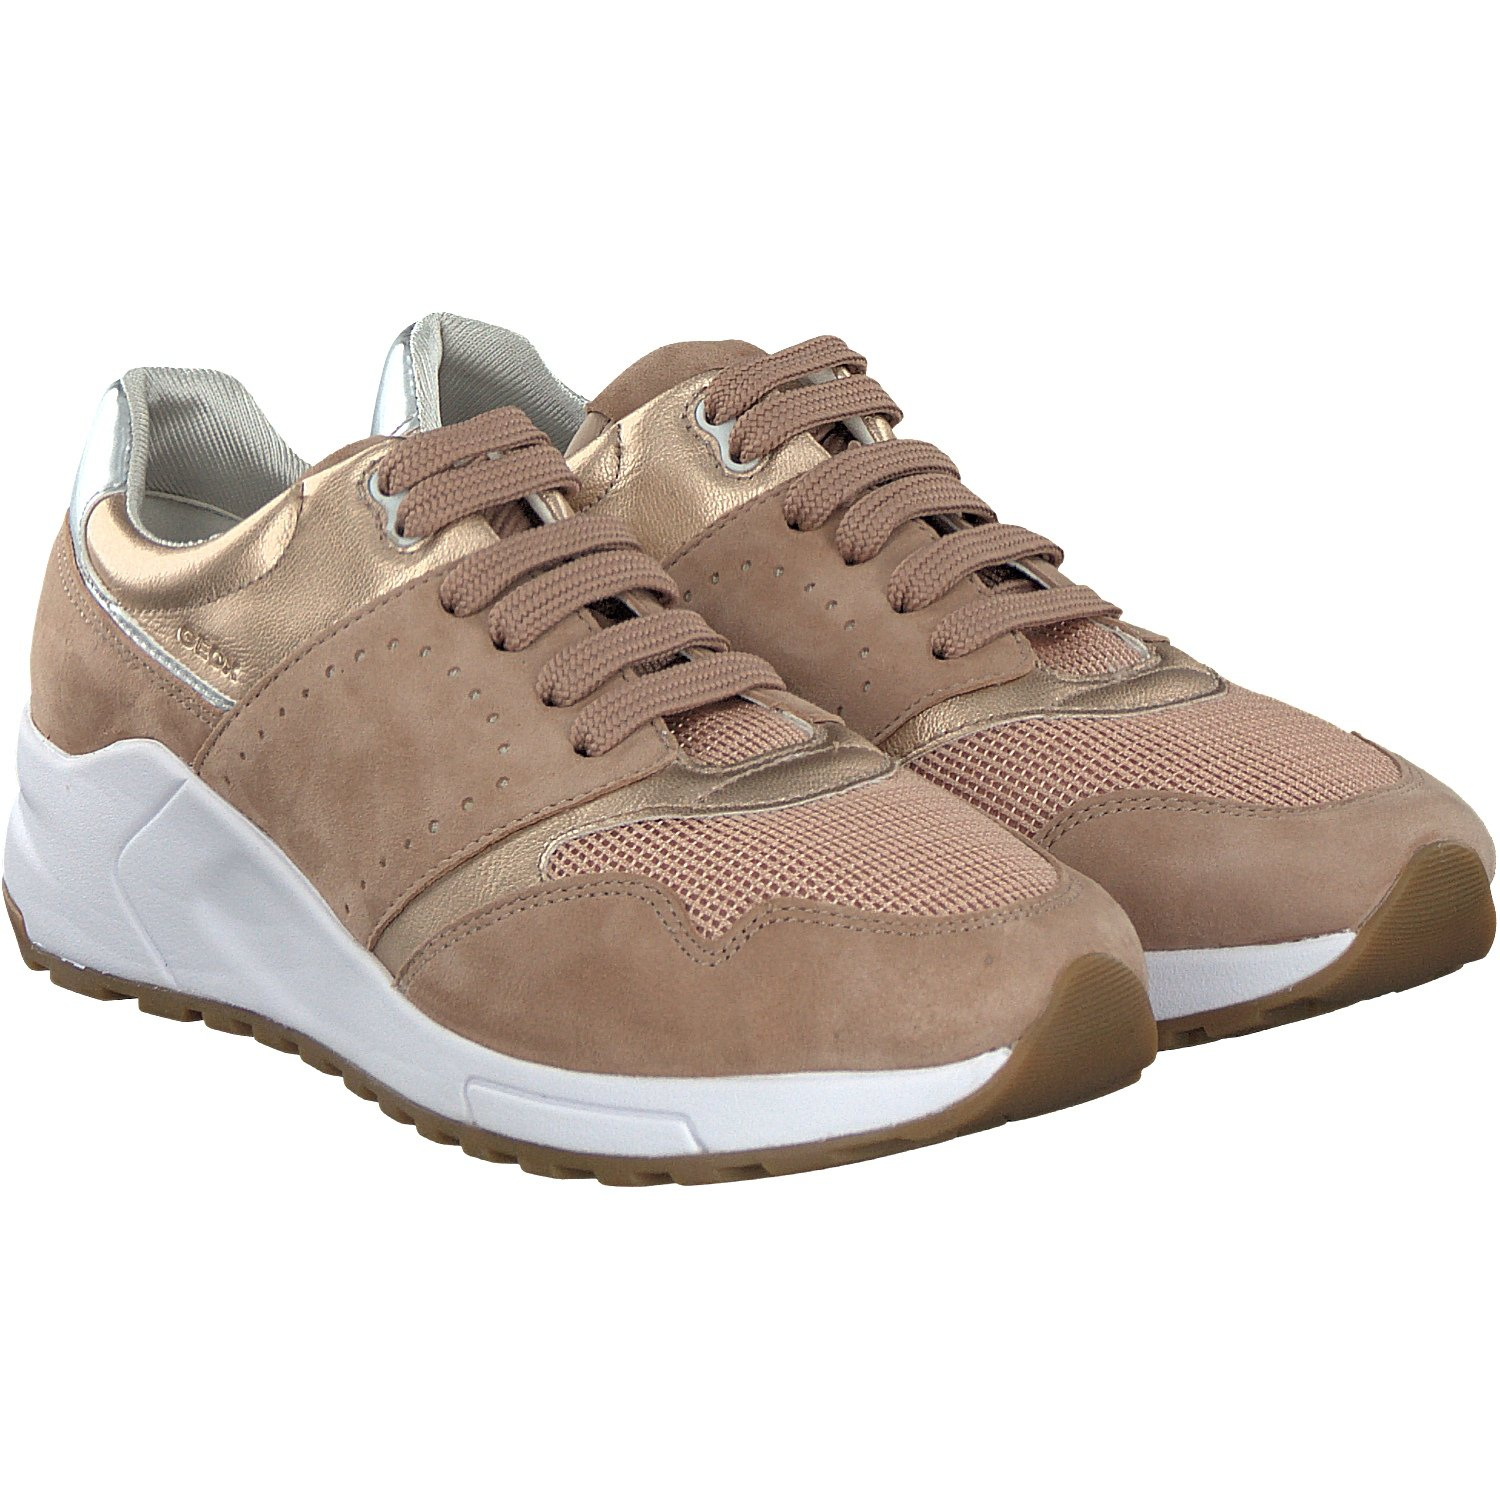 94eaf1c5302aa1 Geox Women's Shoes D724DA Phyteam Casual Women's Sneakers, WedgeSneakers,  Trainers with hidden Wedge Heel in the Shoe: Amazon.co.uk: Shoes & Bags